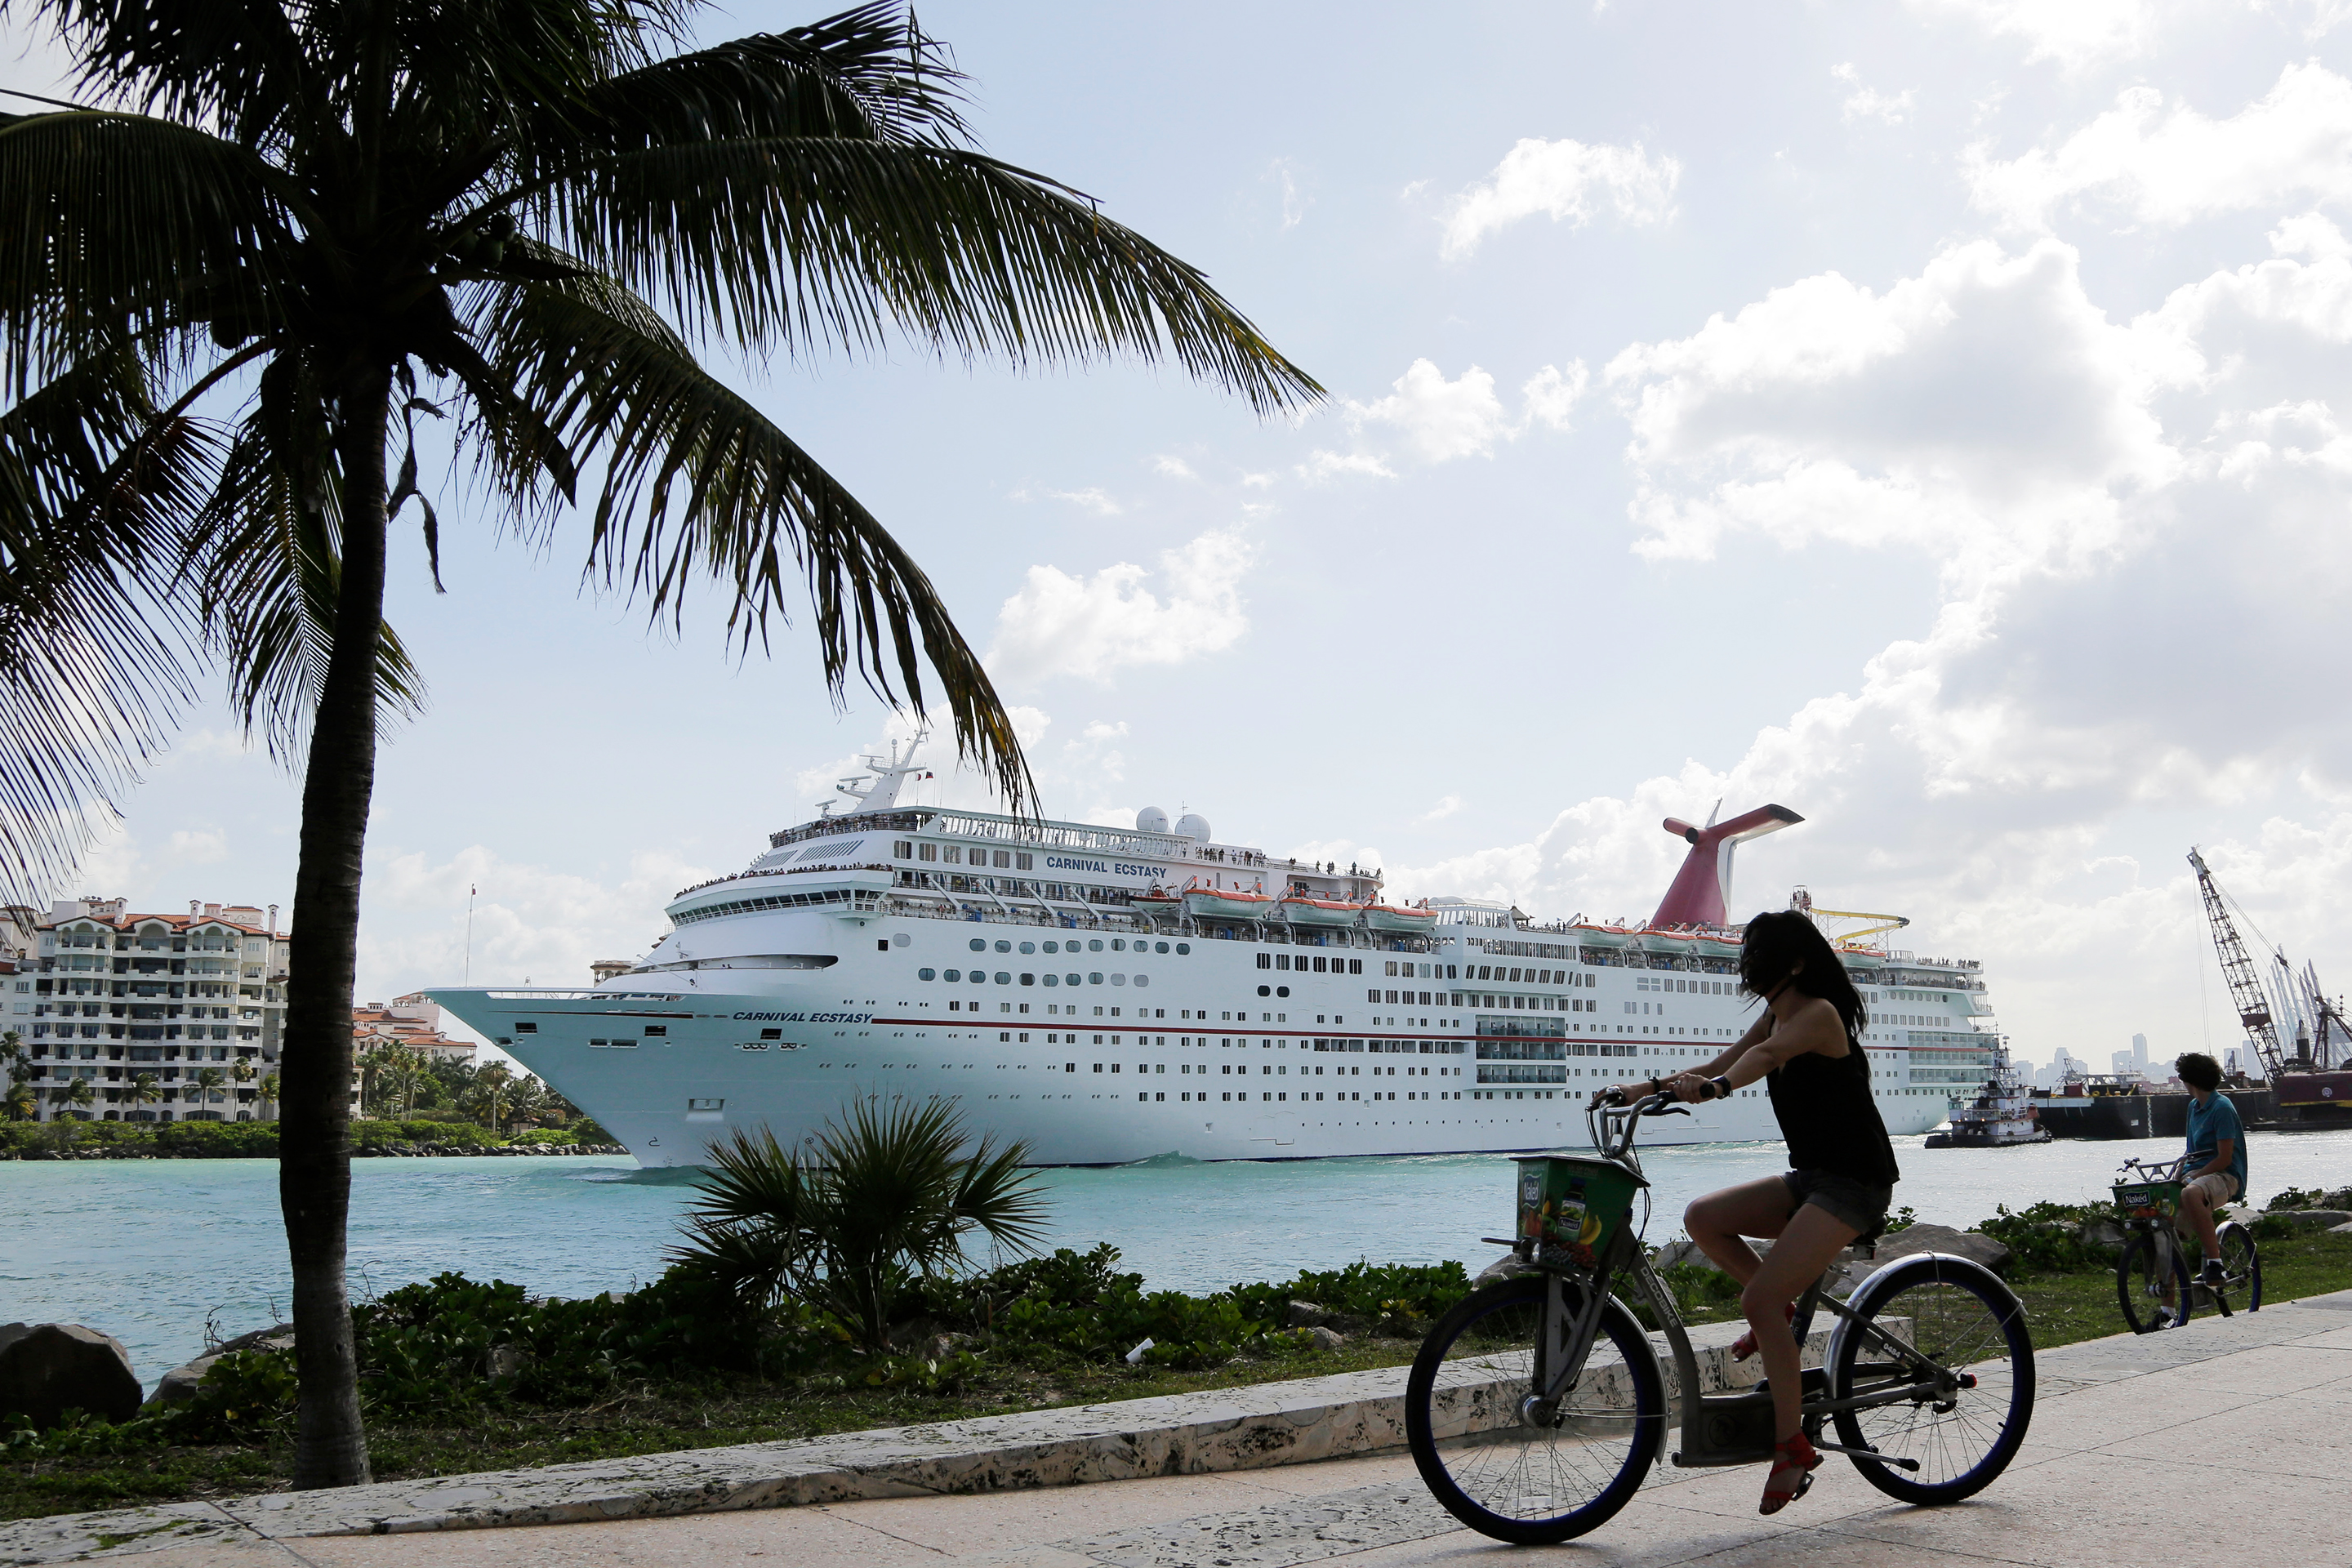 Carnival Cruise Ships Might Be Barred From U S  Ports | Fortune